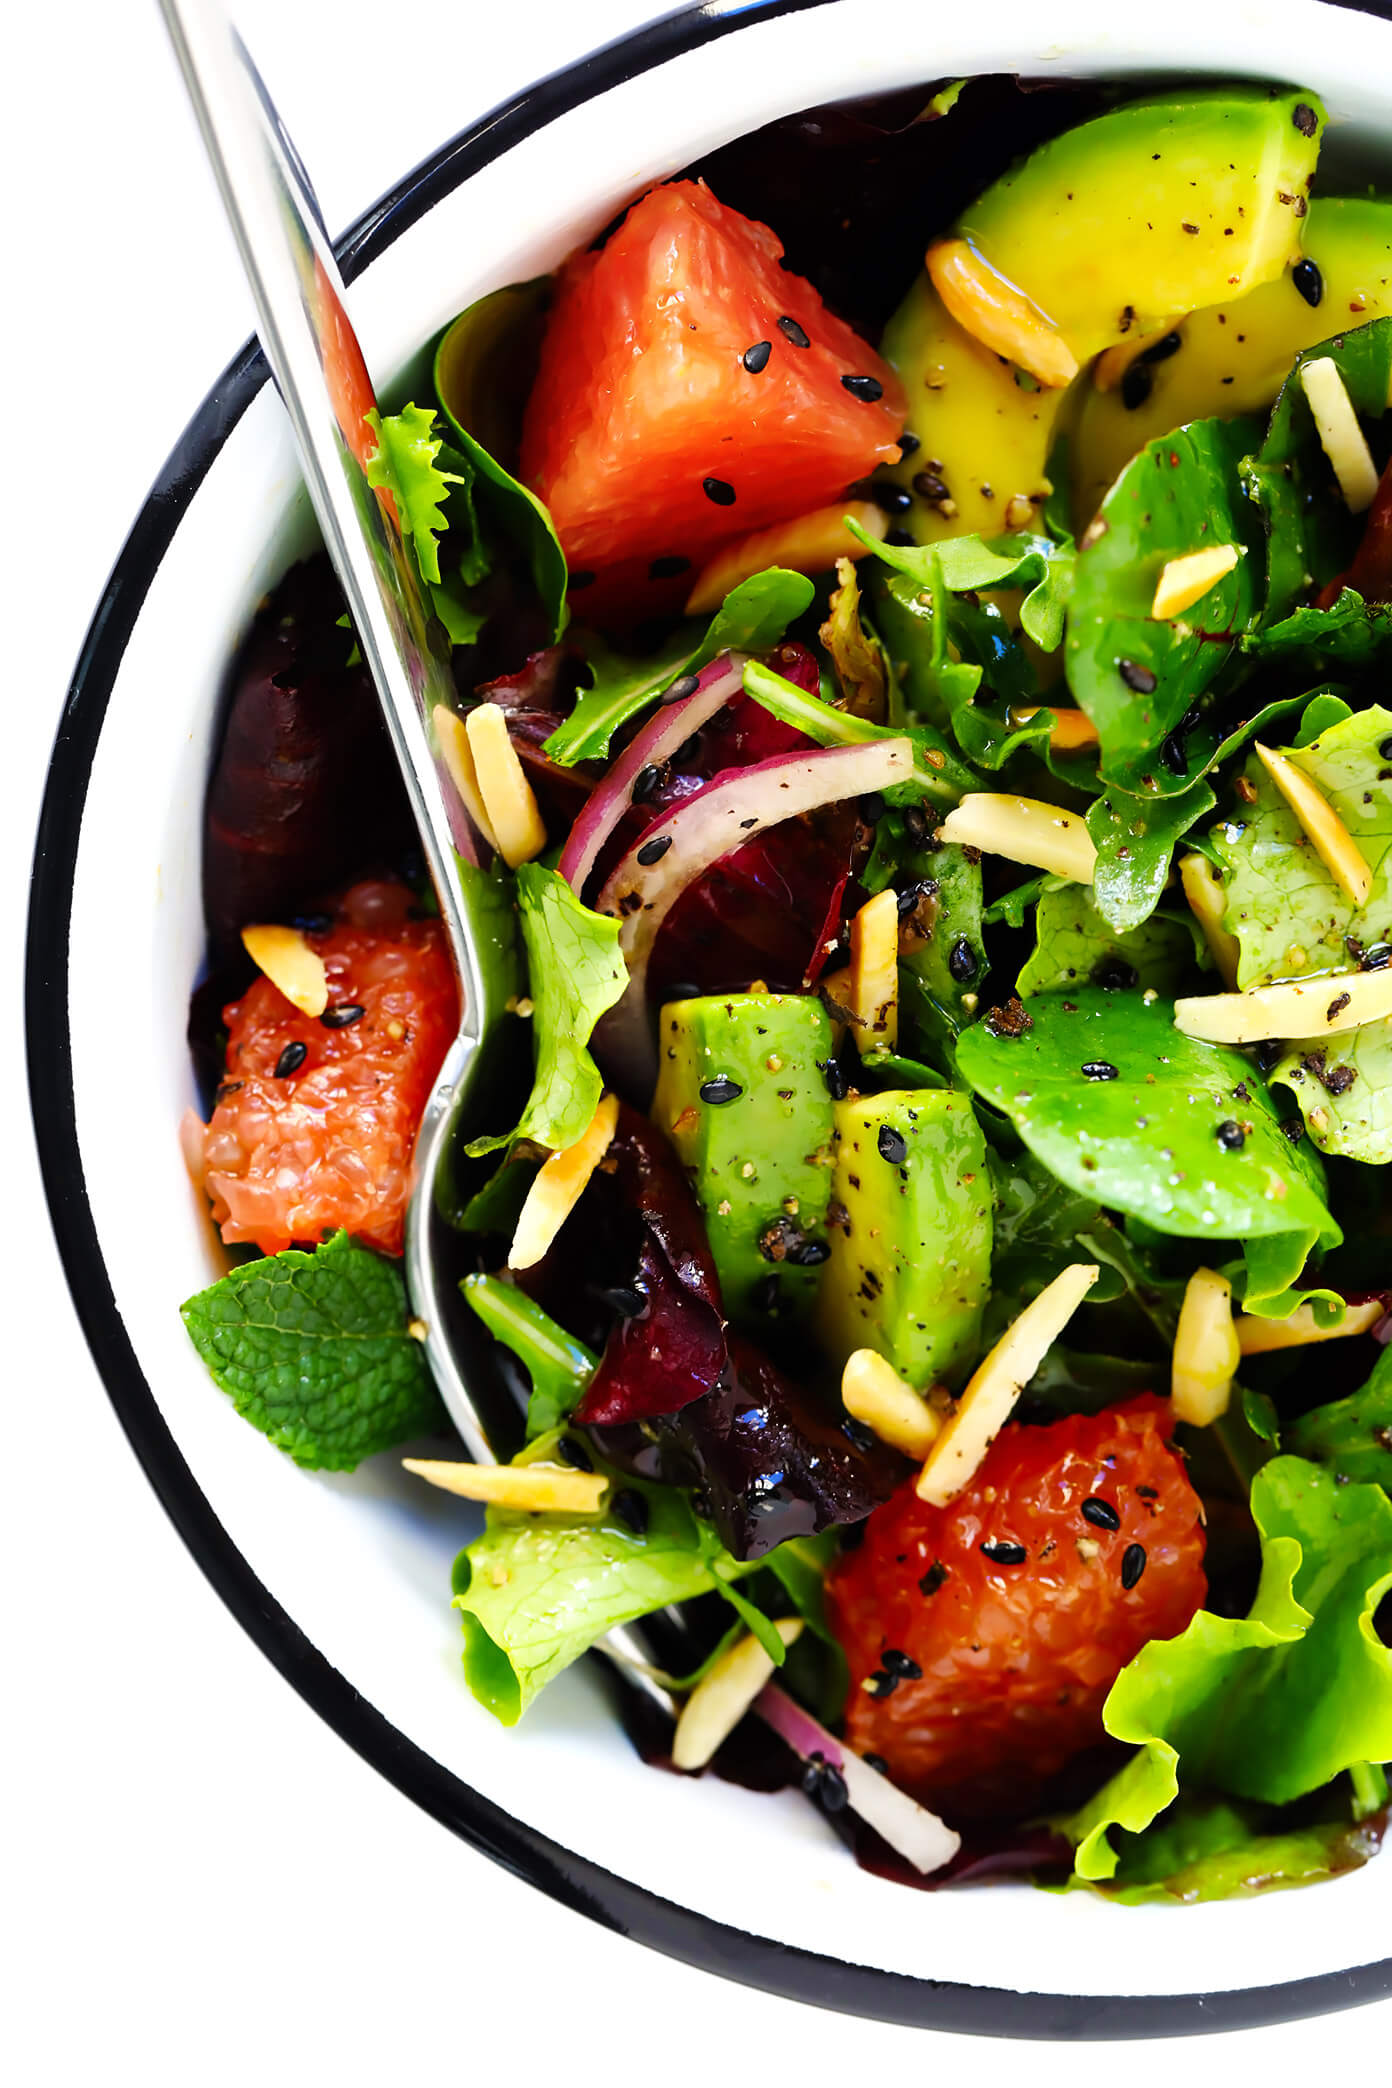 Sunshine Sesame Grapefruit Avocado Salad with Mint and Basil